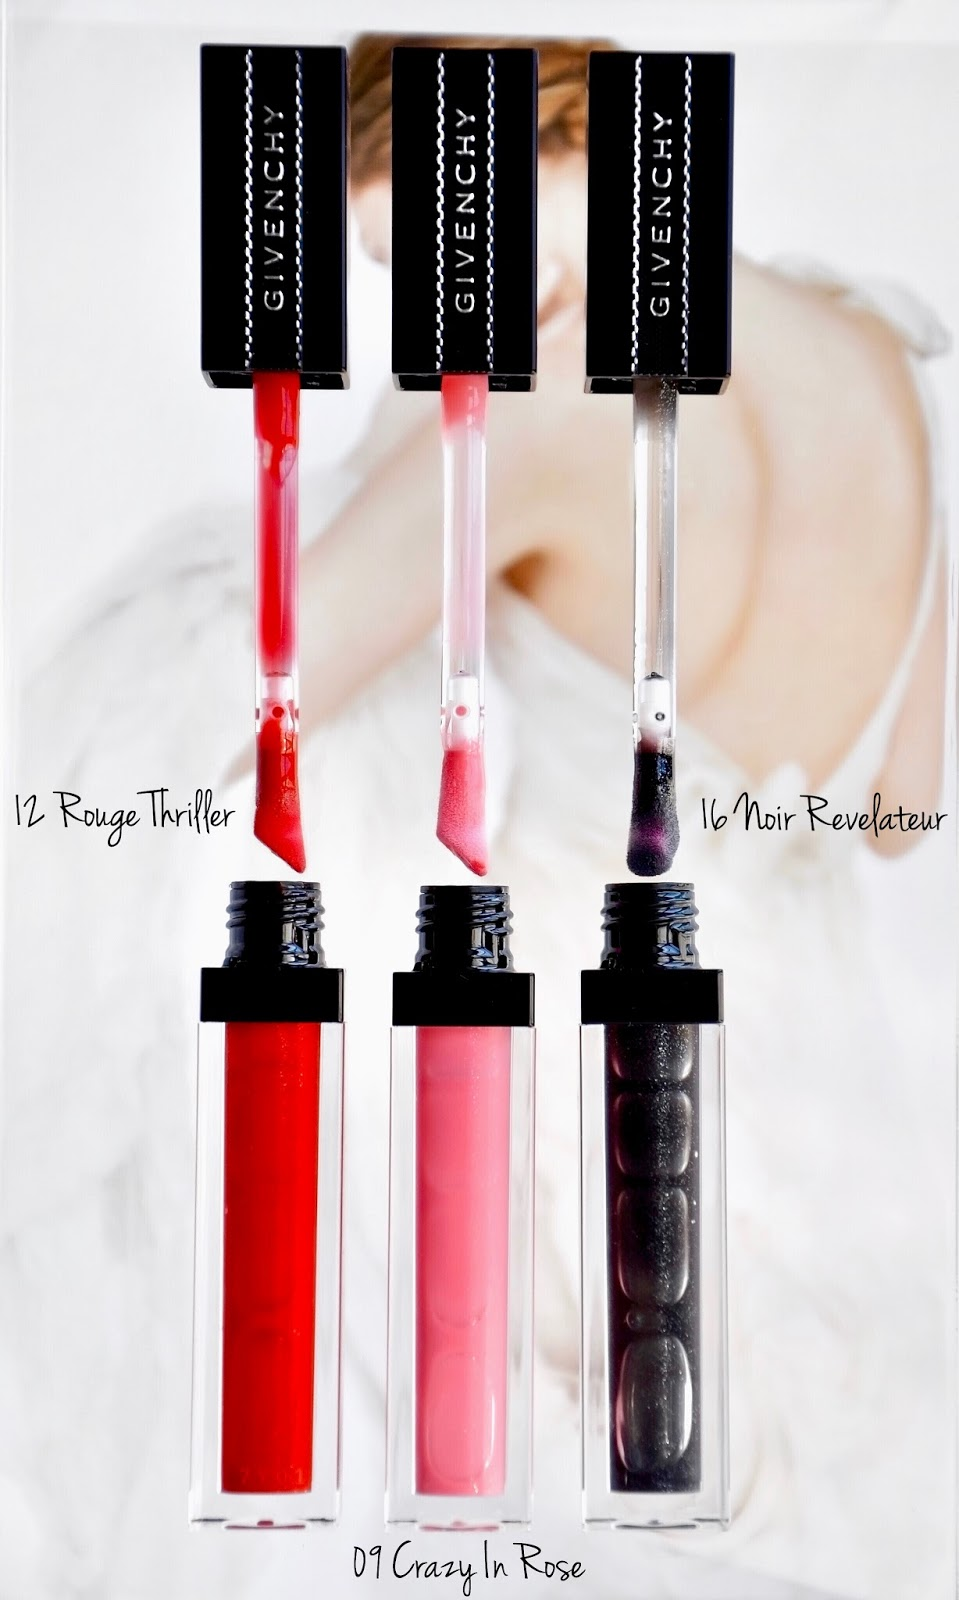 Givenchy Gloss Interdit Vinyl 12 Rouge Thriller Review